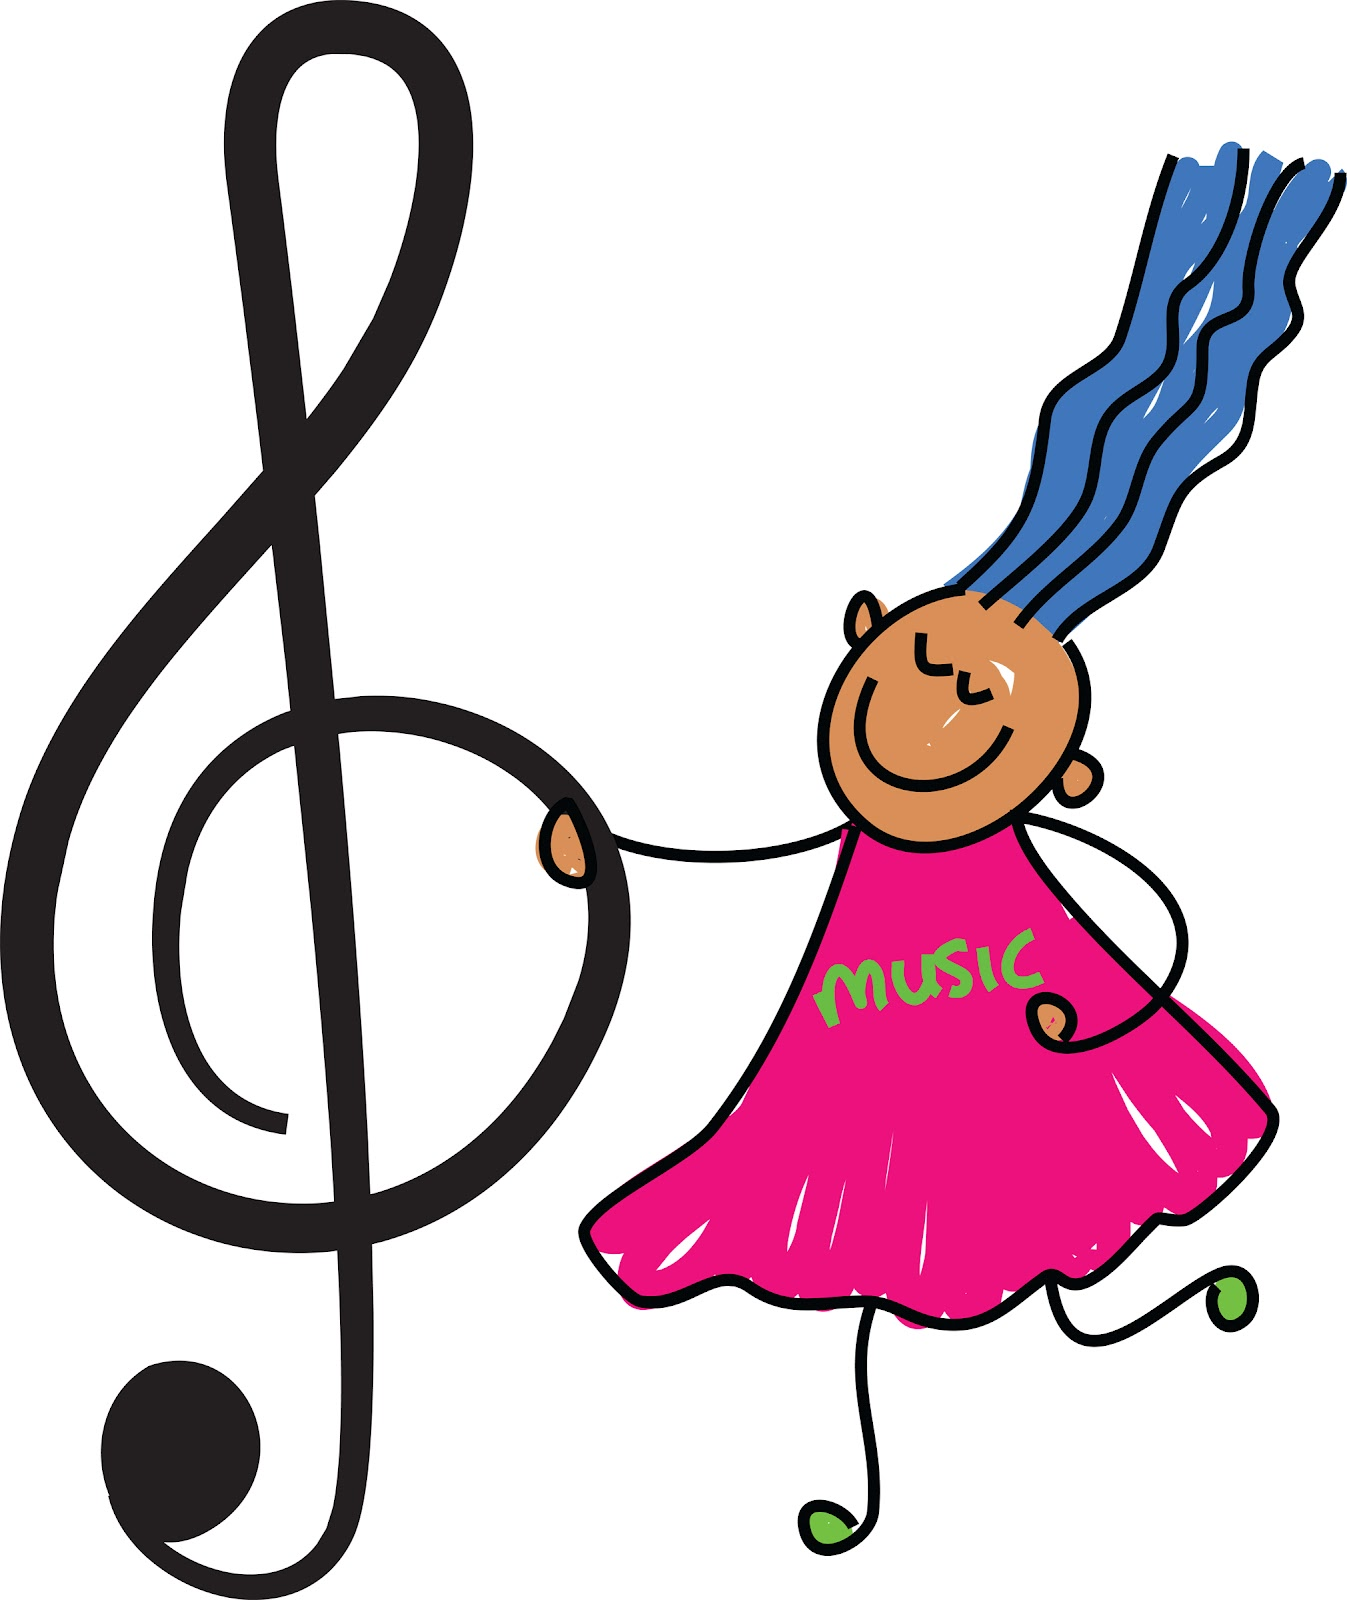 Free music notes clipart image 7